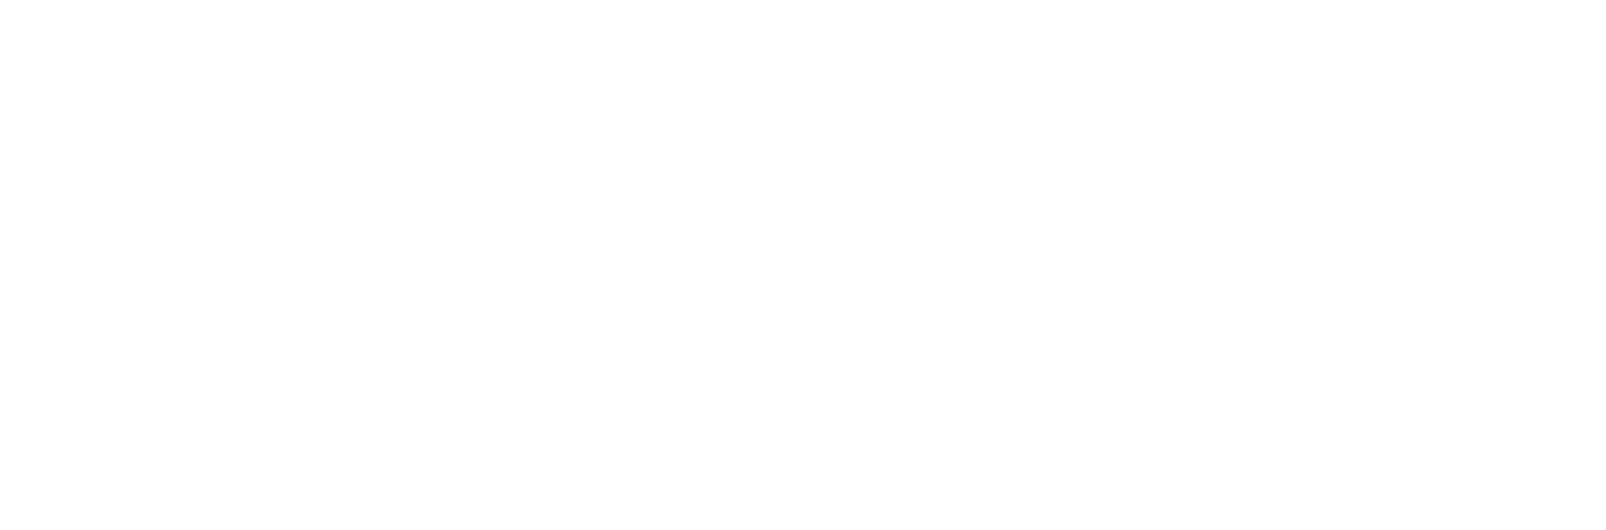 Media Nomads | a Creative Marketing Agency